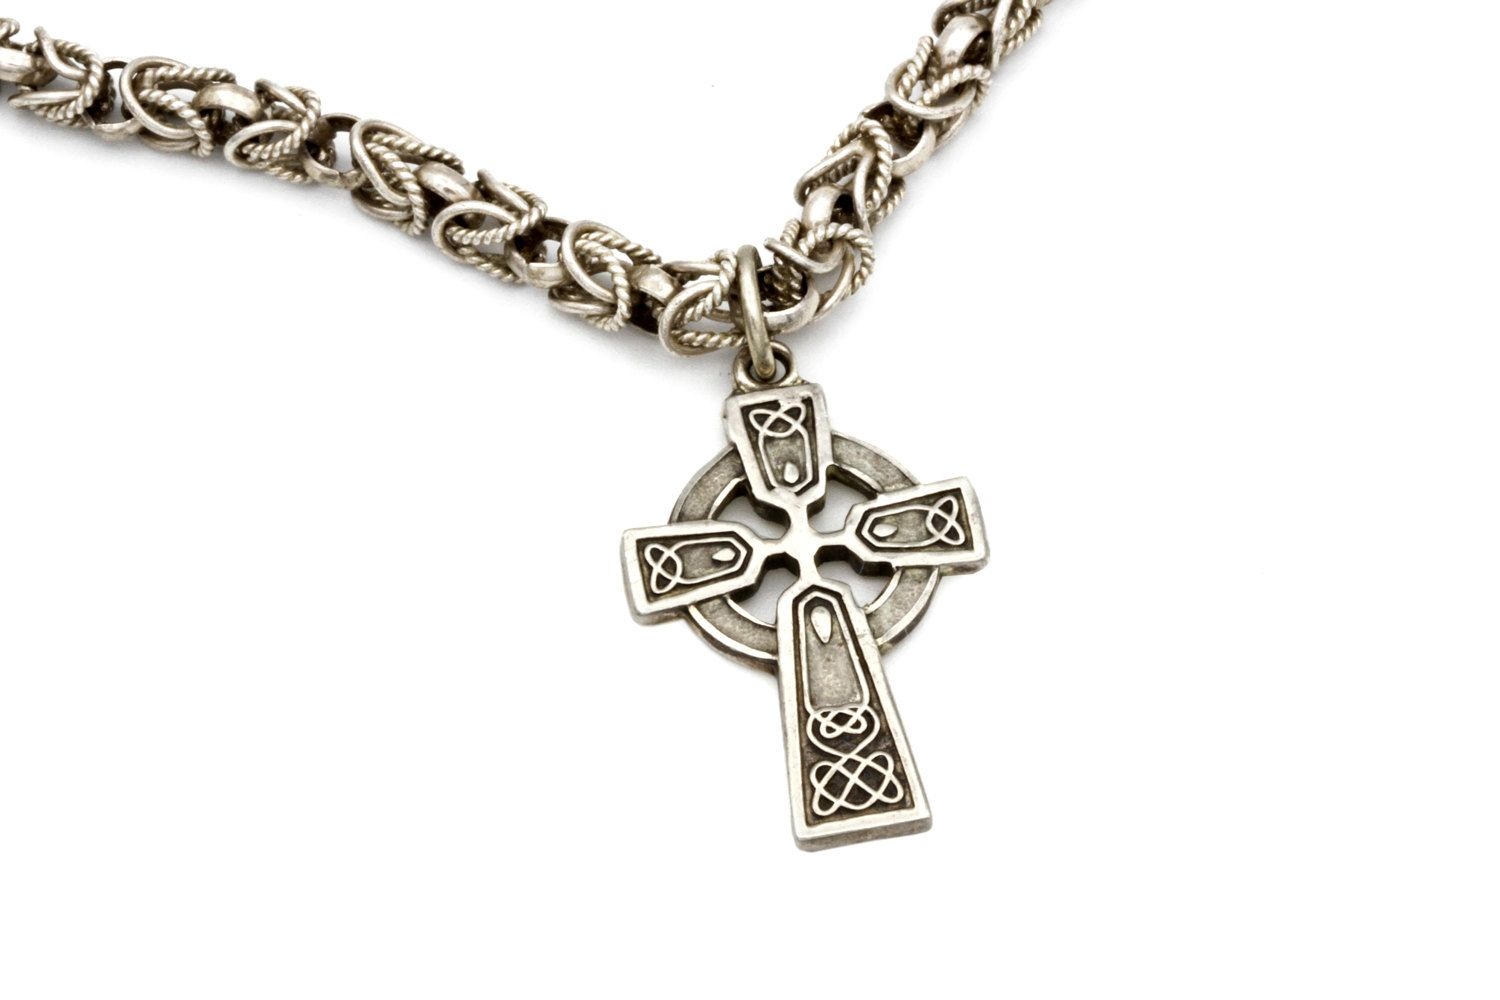 Celtic sun cross necklace celtic irish cross vintage necklaces celtic sun cross necklace celtic irish cross pendant solar wheel cross pendant byzantine aloadofball